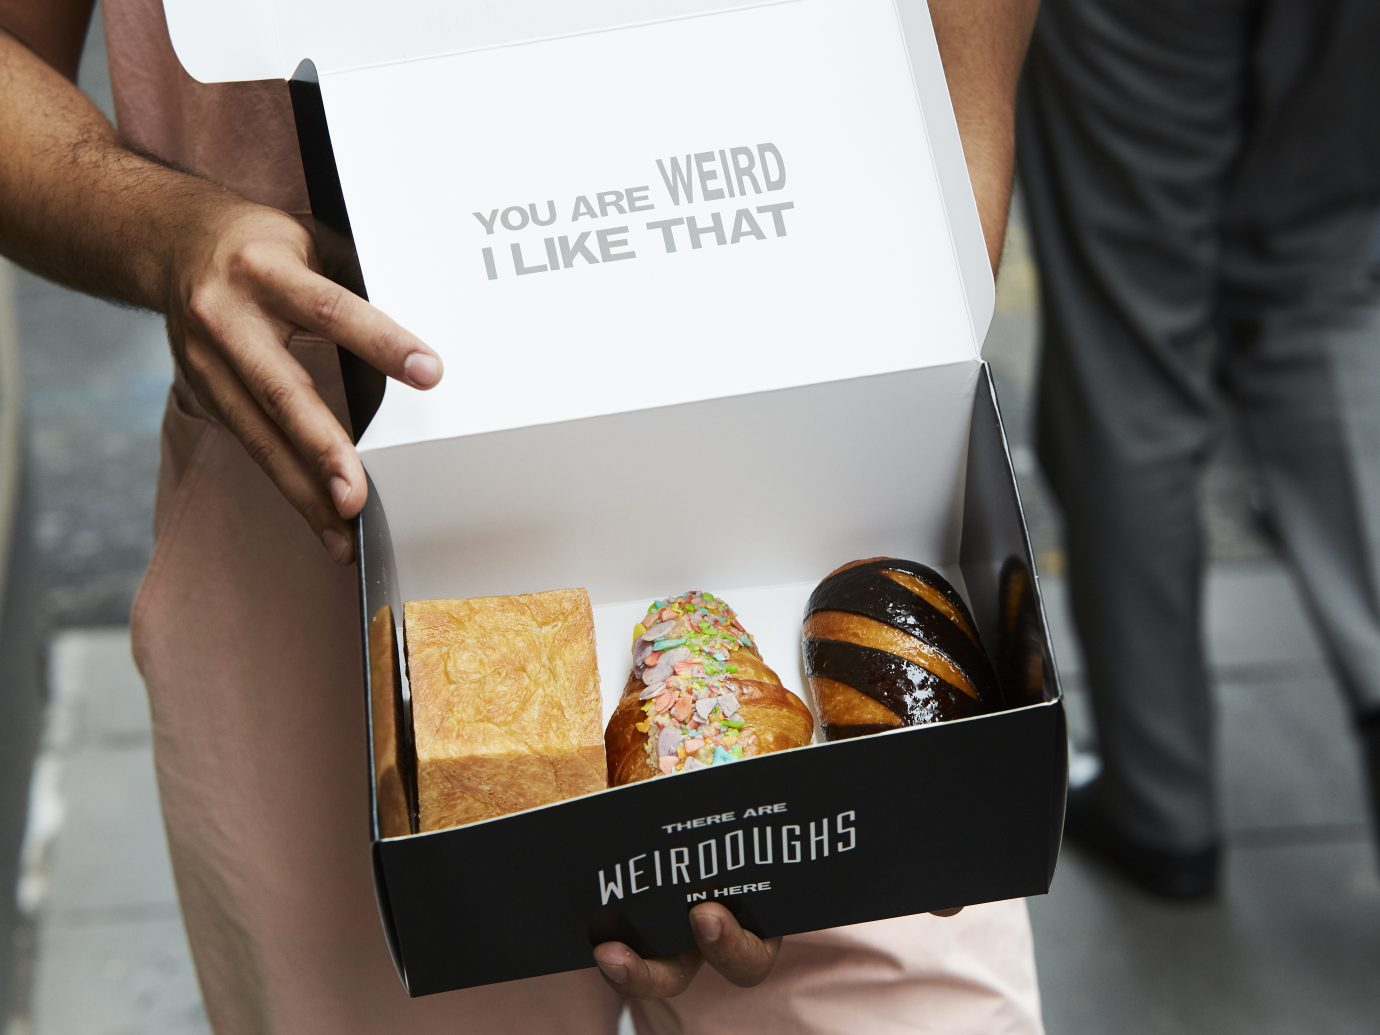 box of doughnuts at Weirdoughs, Melbourne, AUS